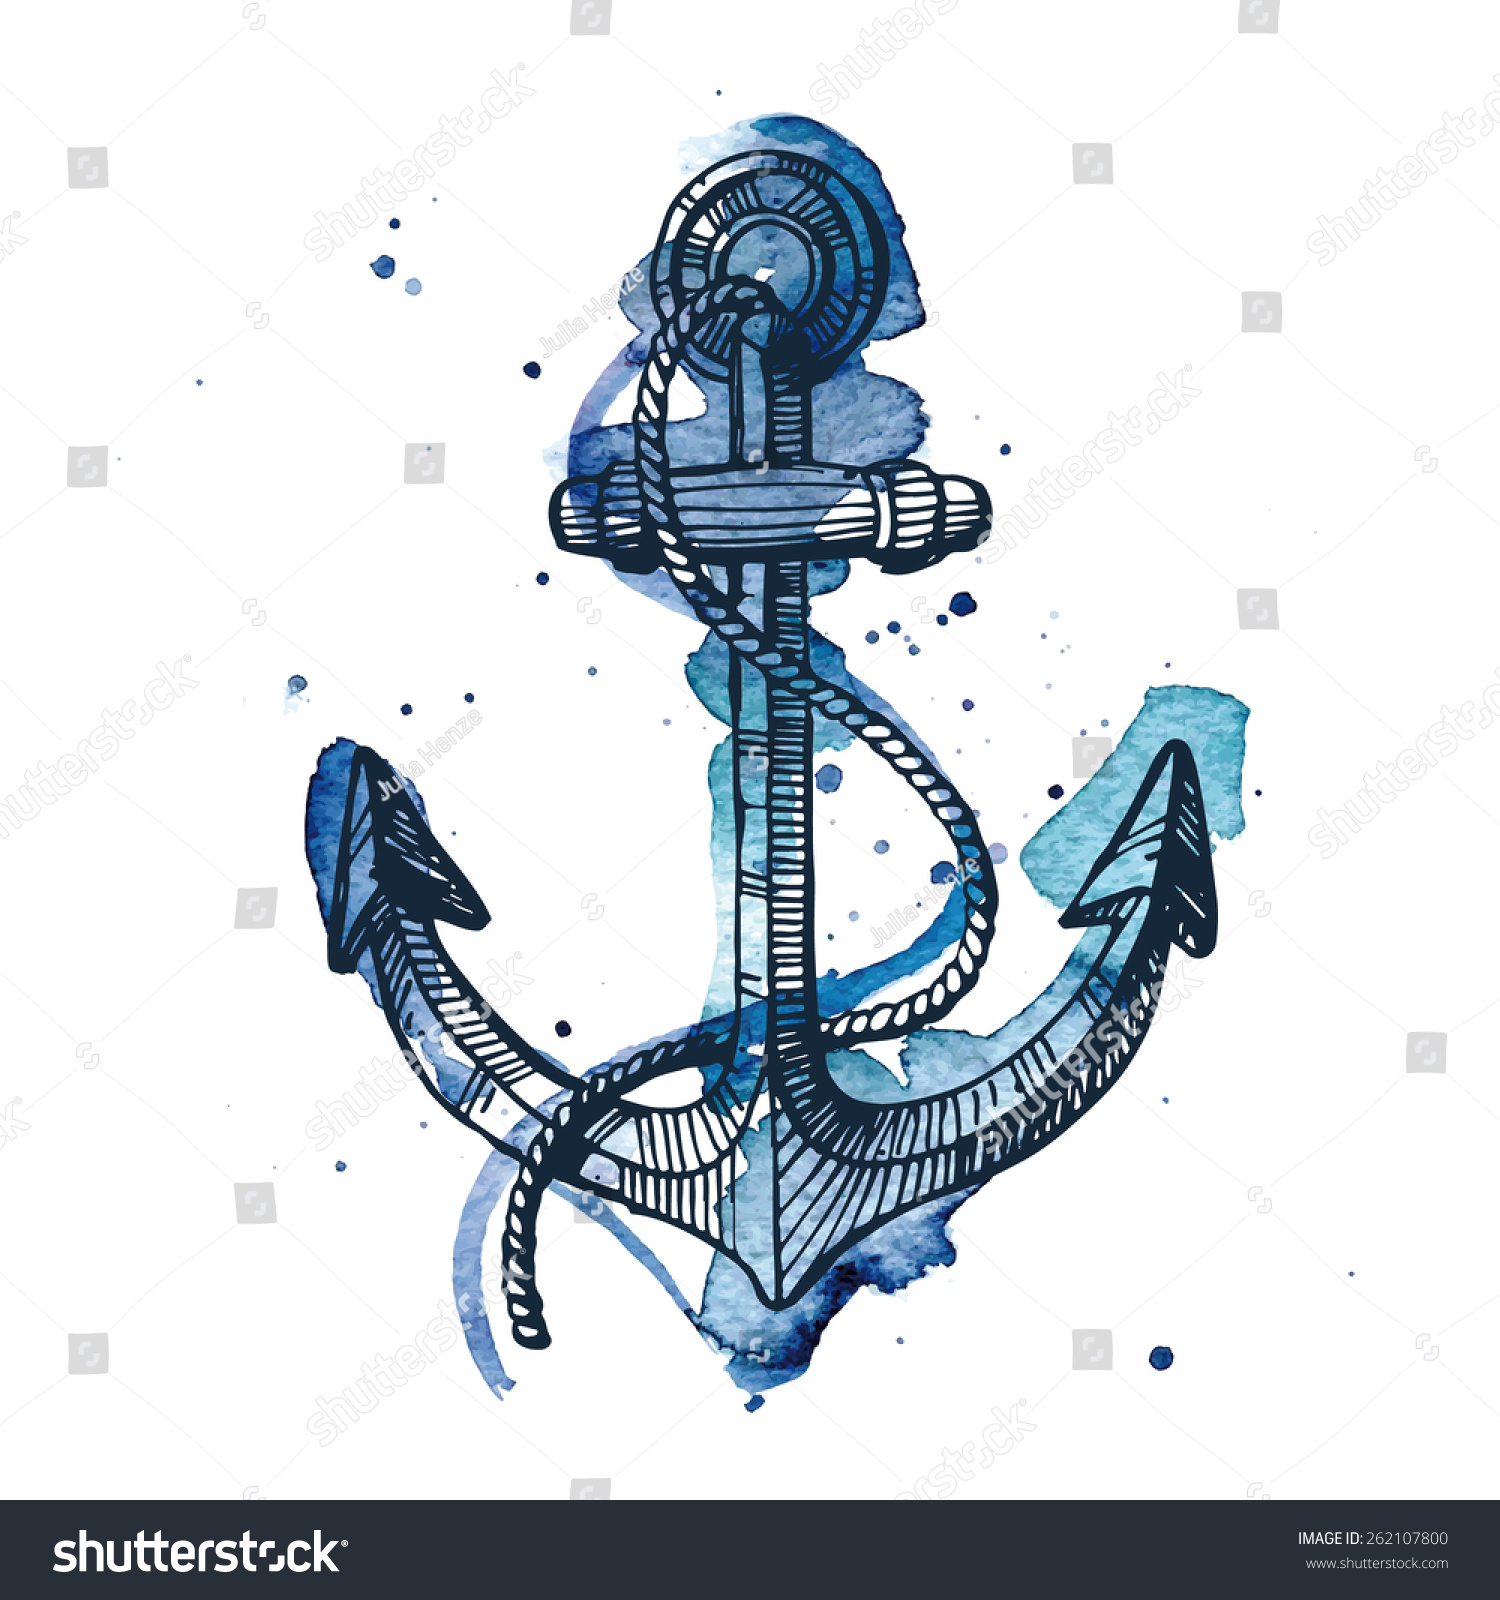 Watercolor And Ink Illustration Of An Anchor. The